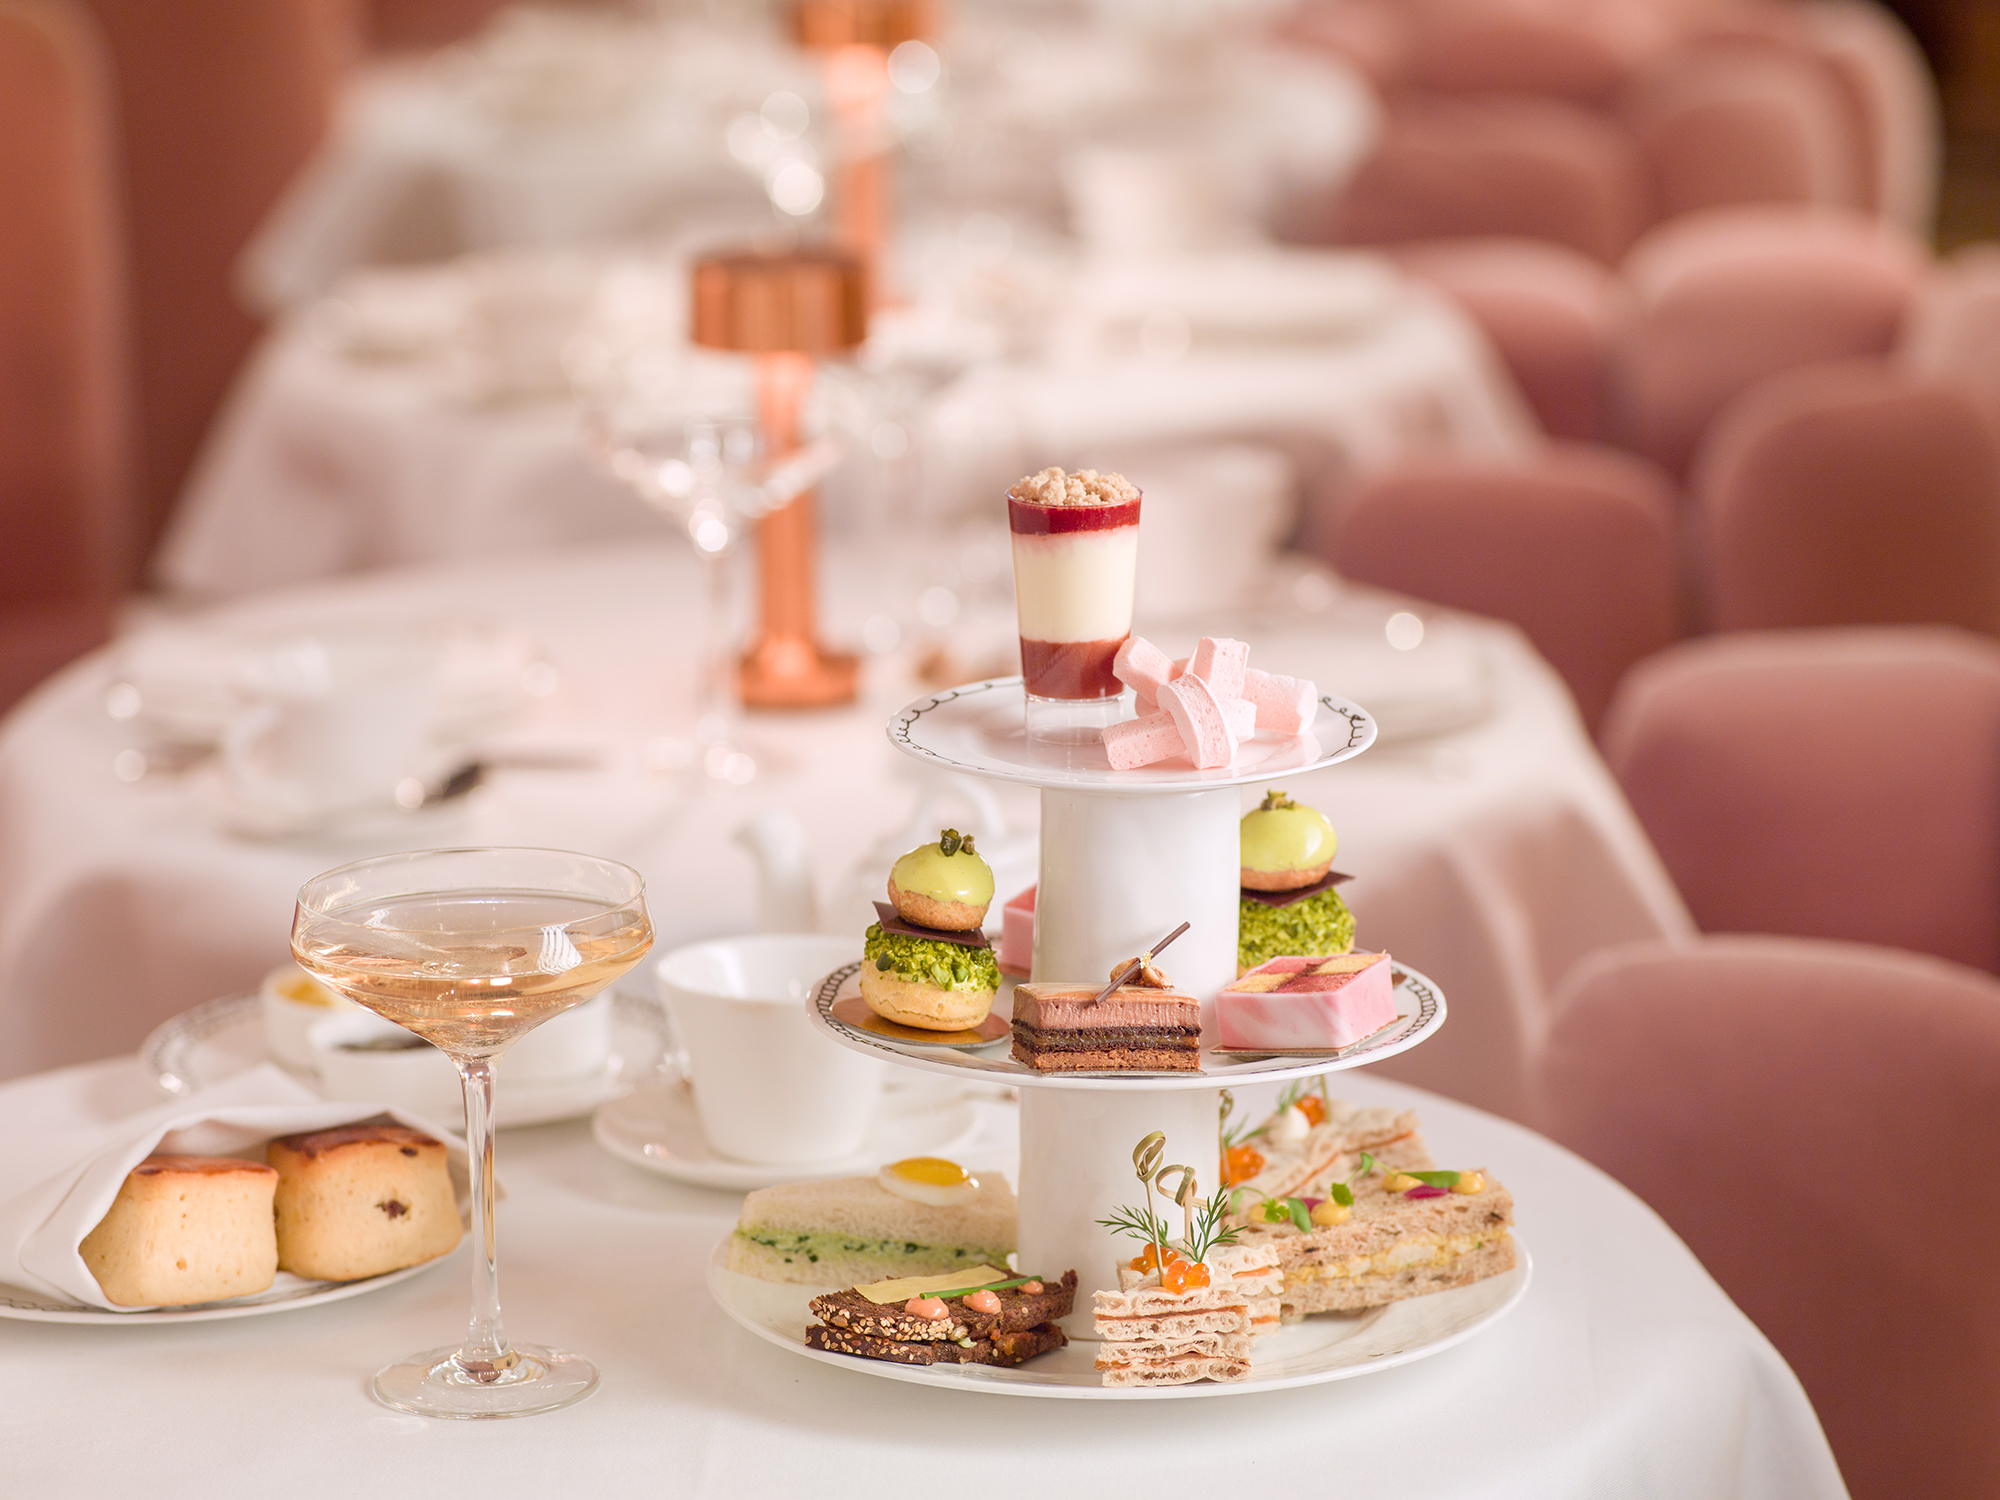 Afternoon Tea In London Best 28 Tea Rooms And Hotels To Visit In 2018 - Olive Magazine